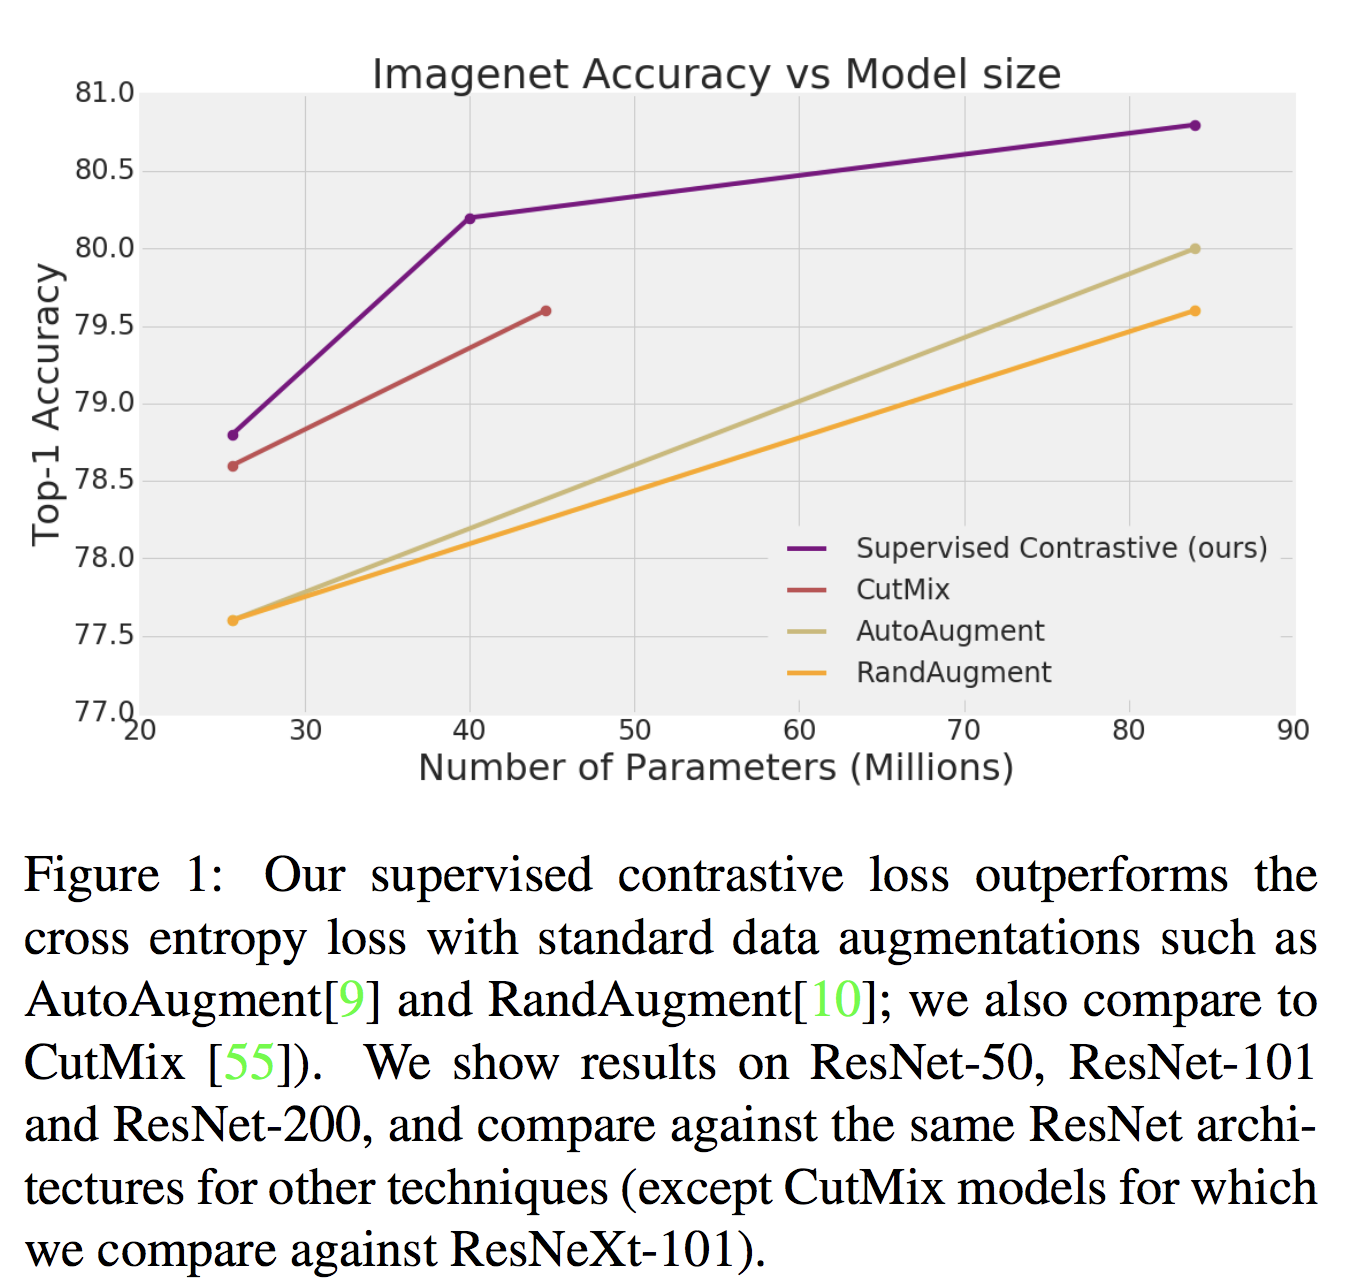 Self Supervised Contrastive Loss image accuracy vs model